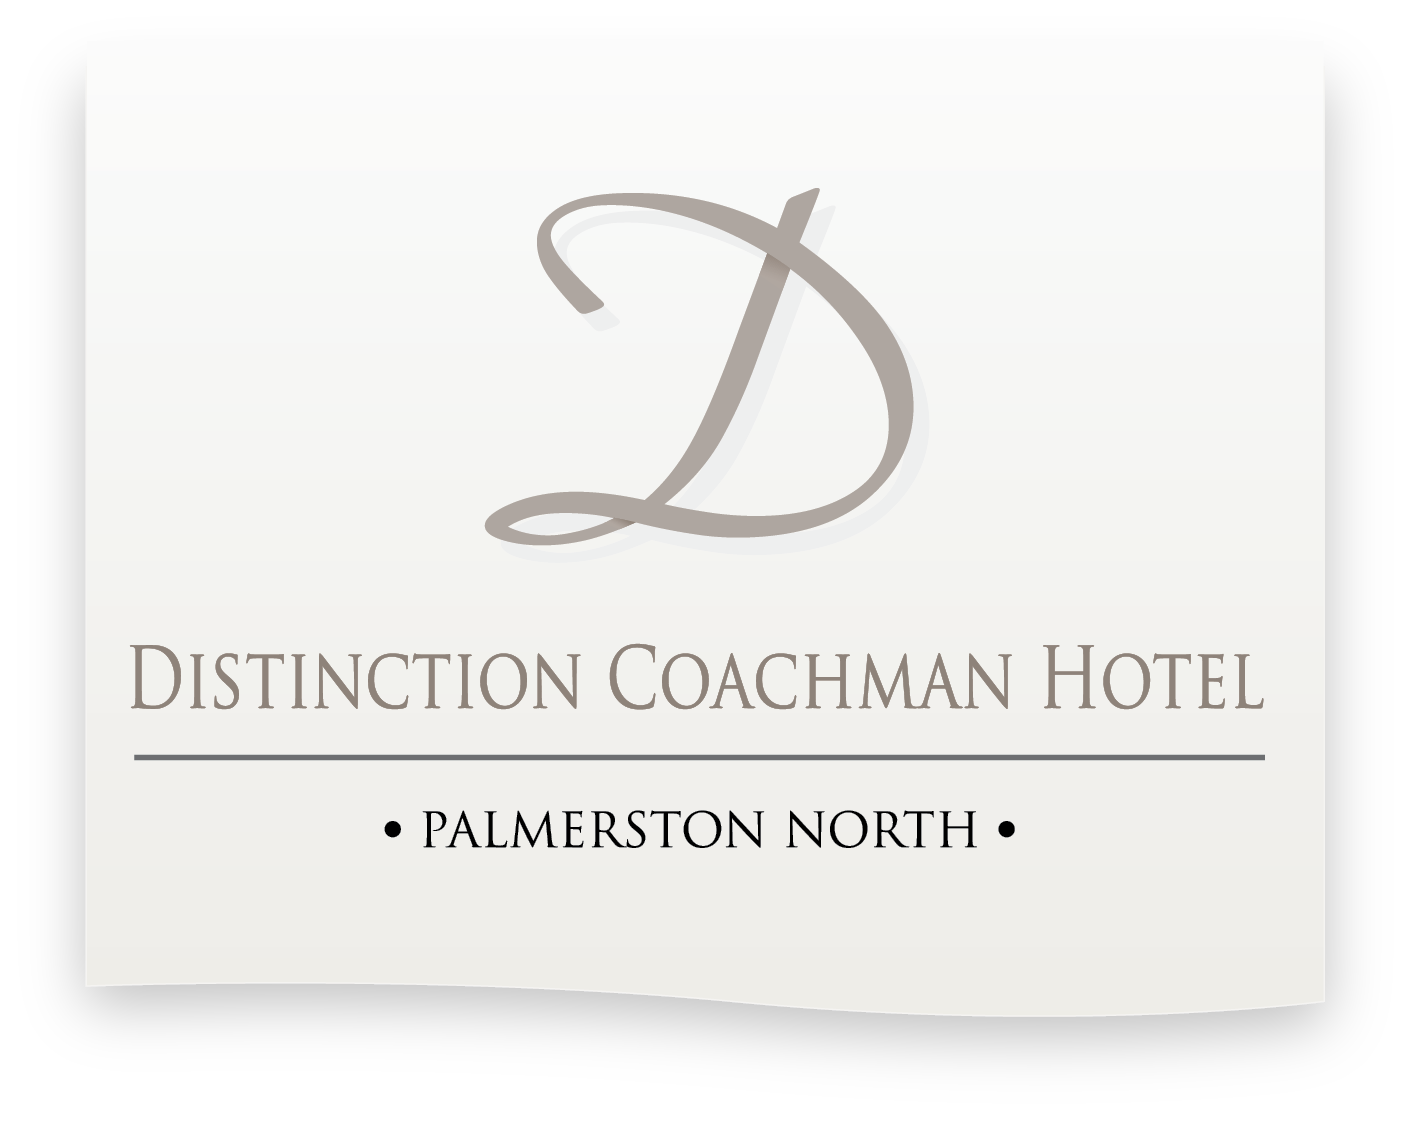 Distinction Coachman Hotel Palmerston North